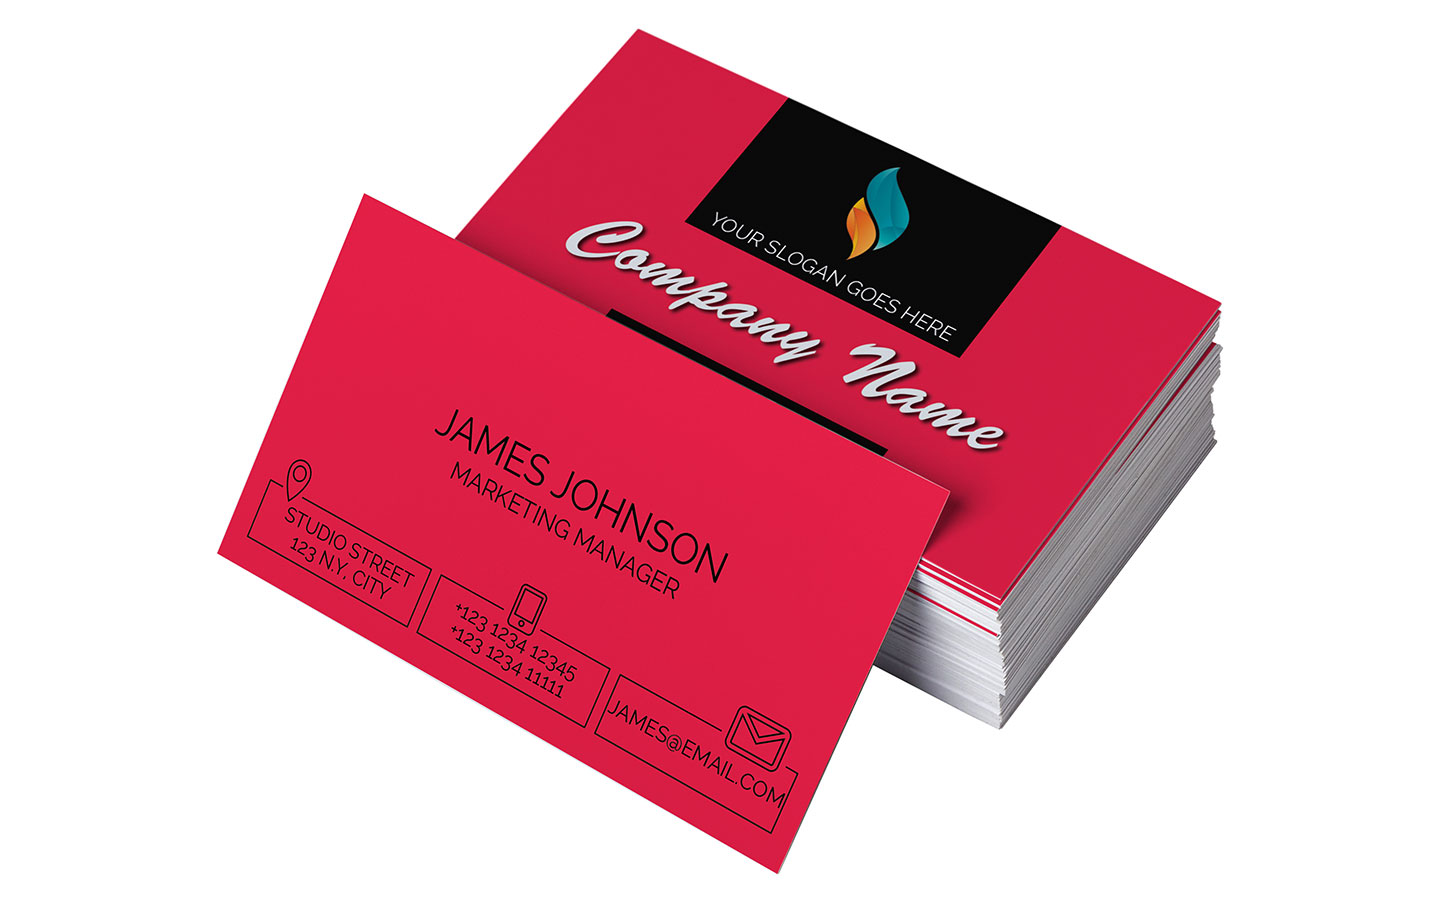 Business card templates for adobe indesign on the mac app store preview of one business card template friedricerecipe